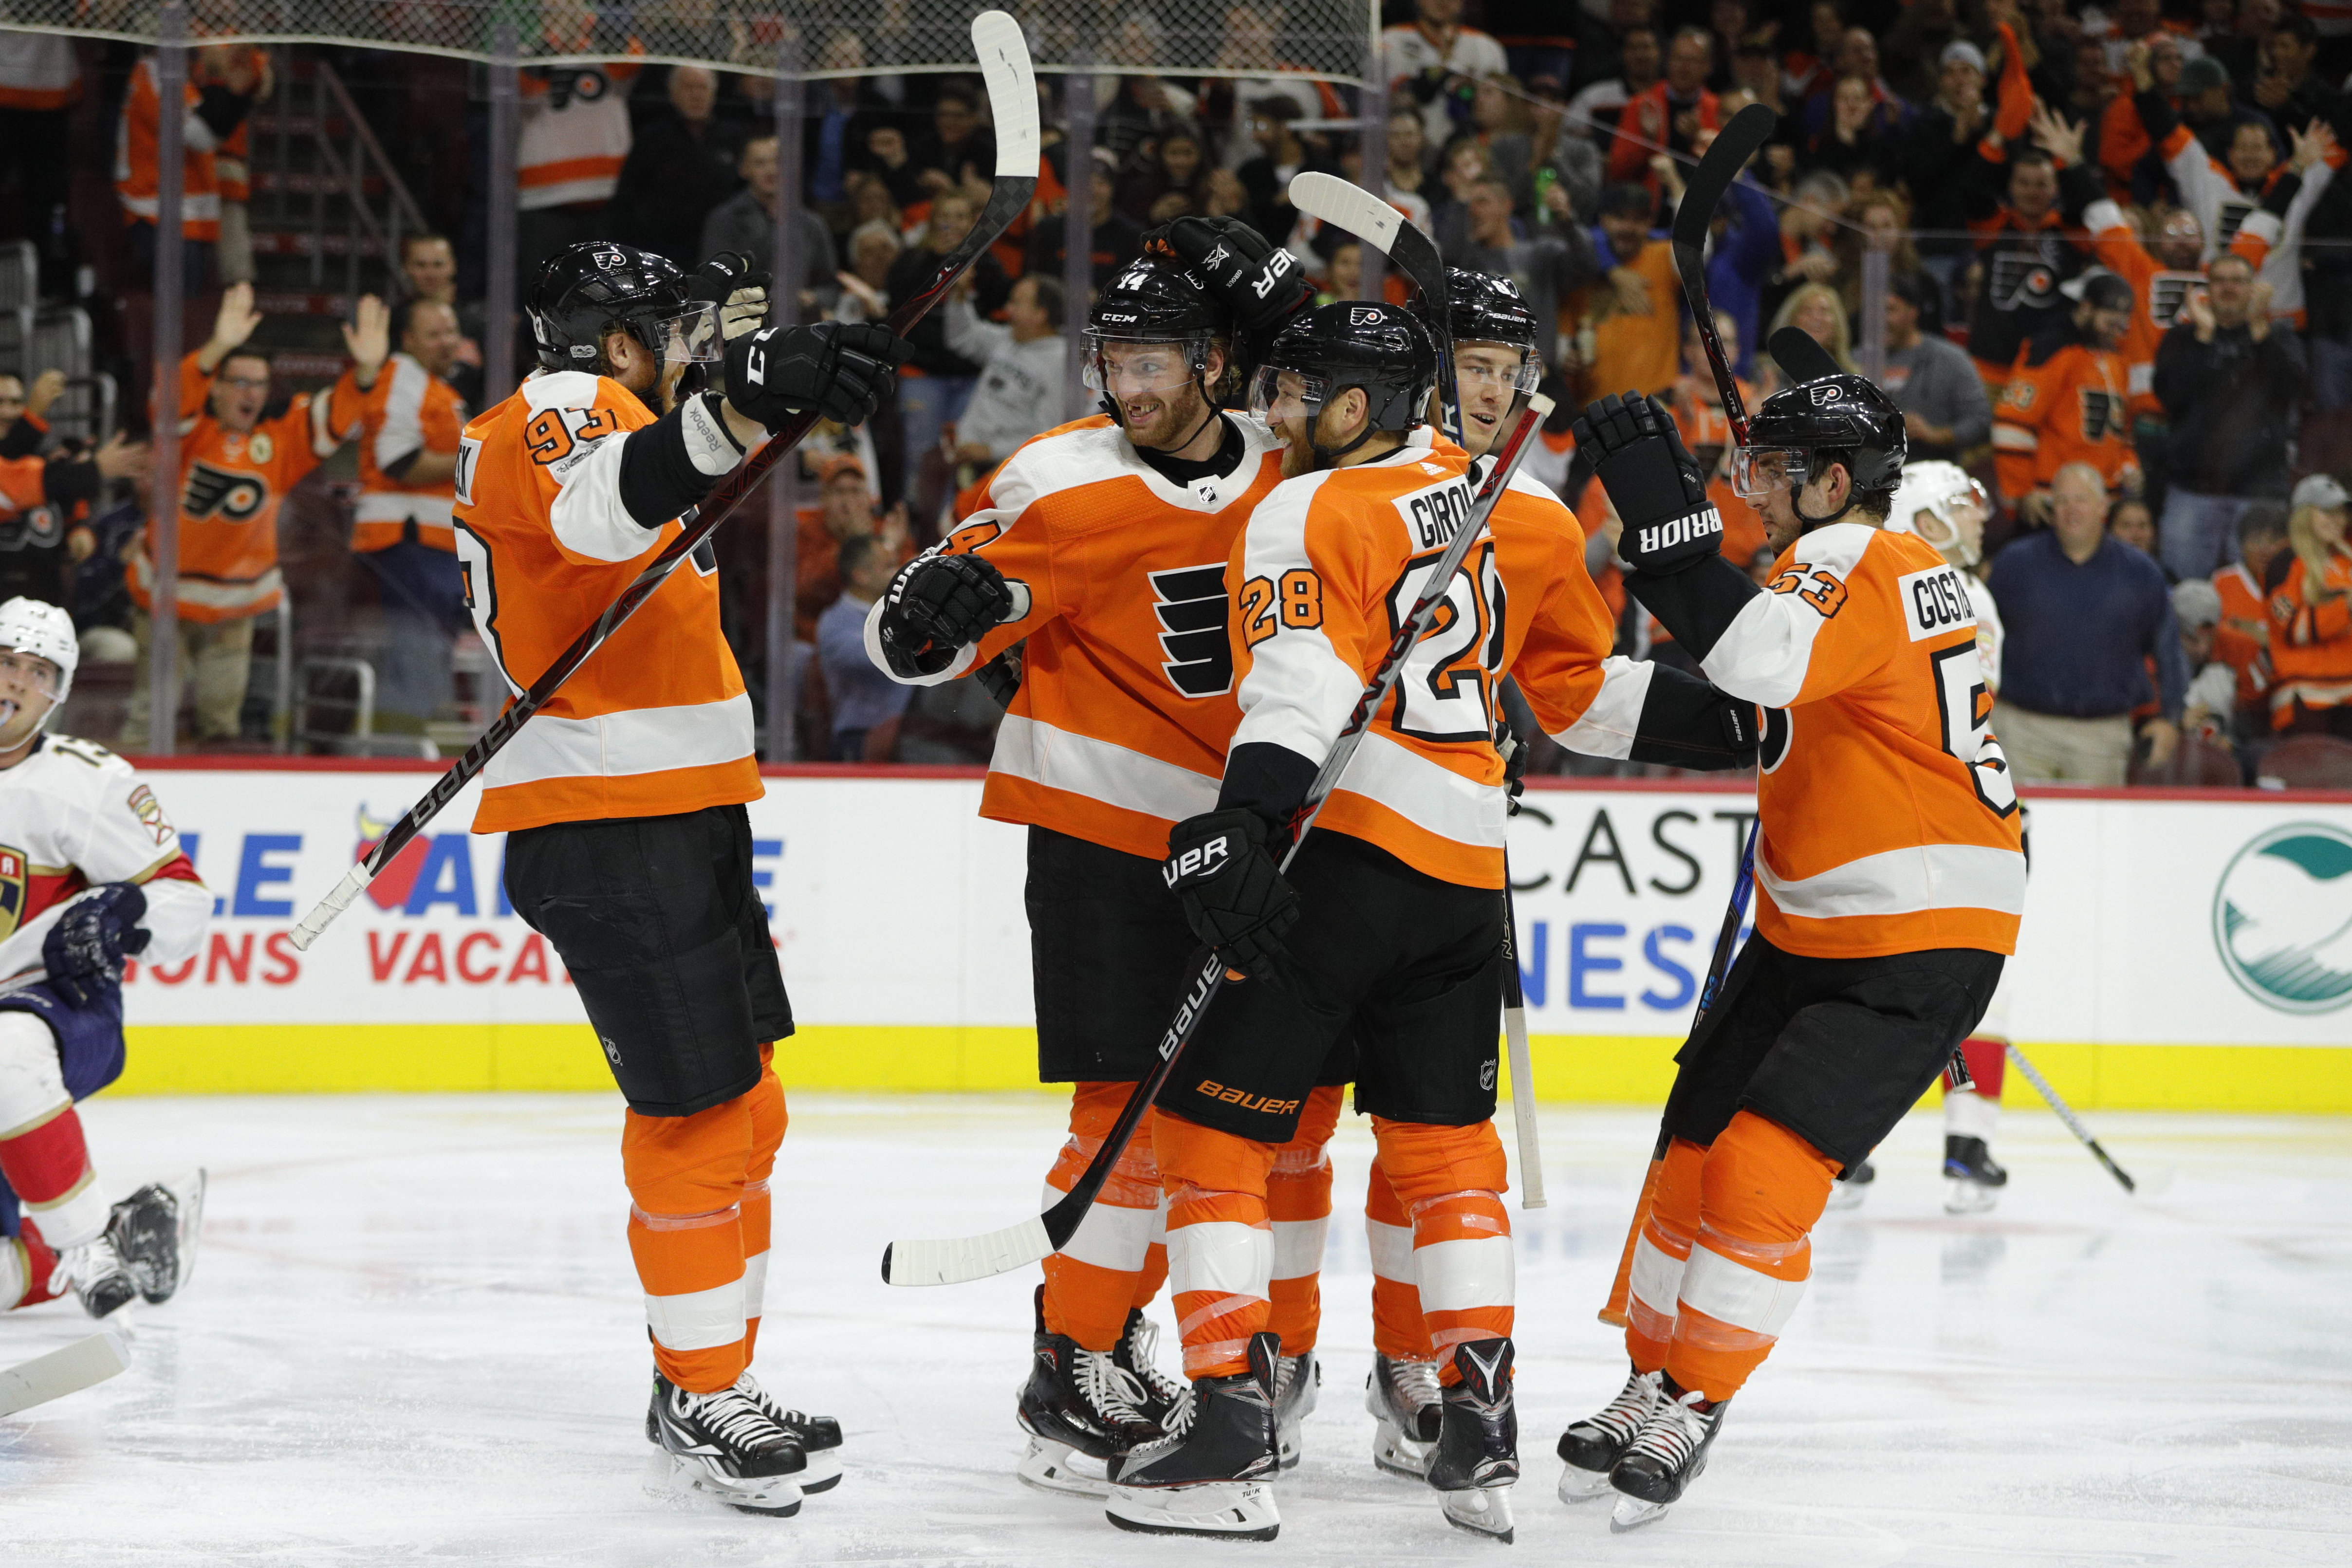 Flyers center Sean Couturier celebrates a goal with teammates on Oct. 17.